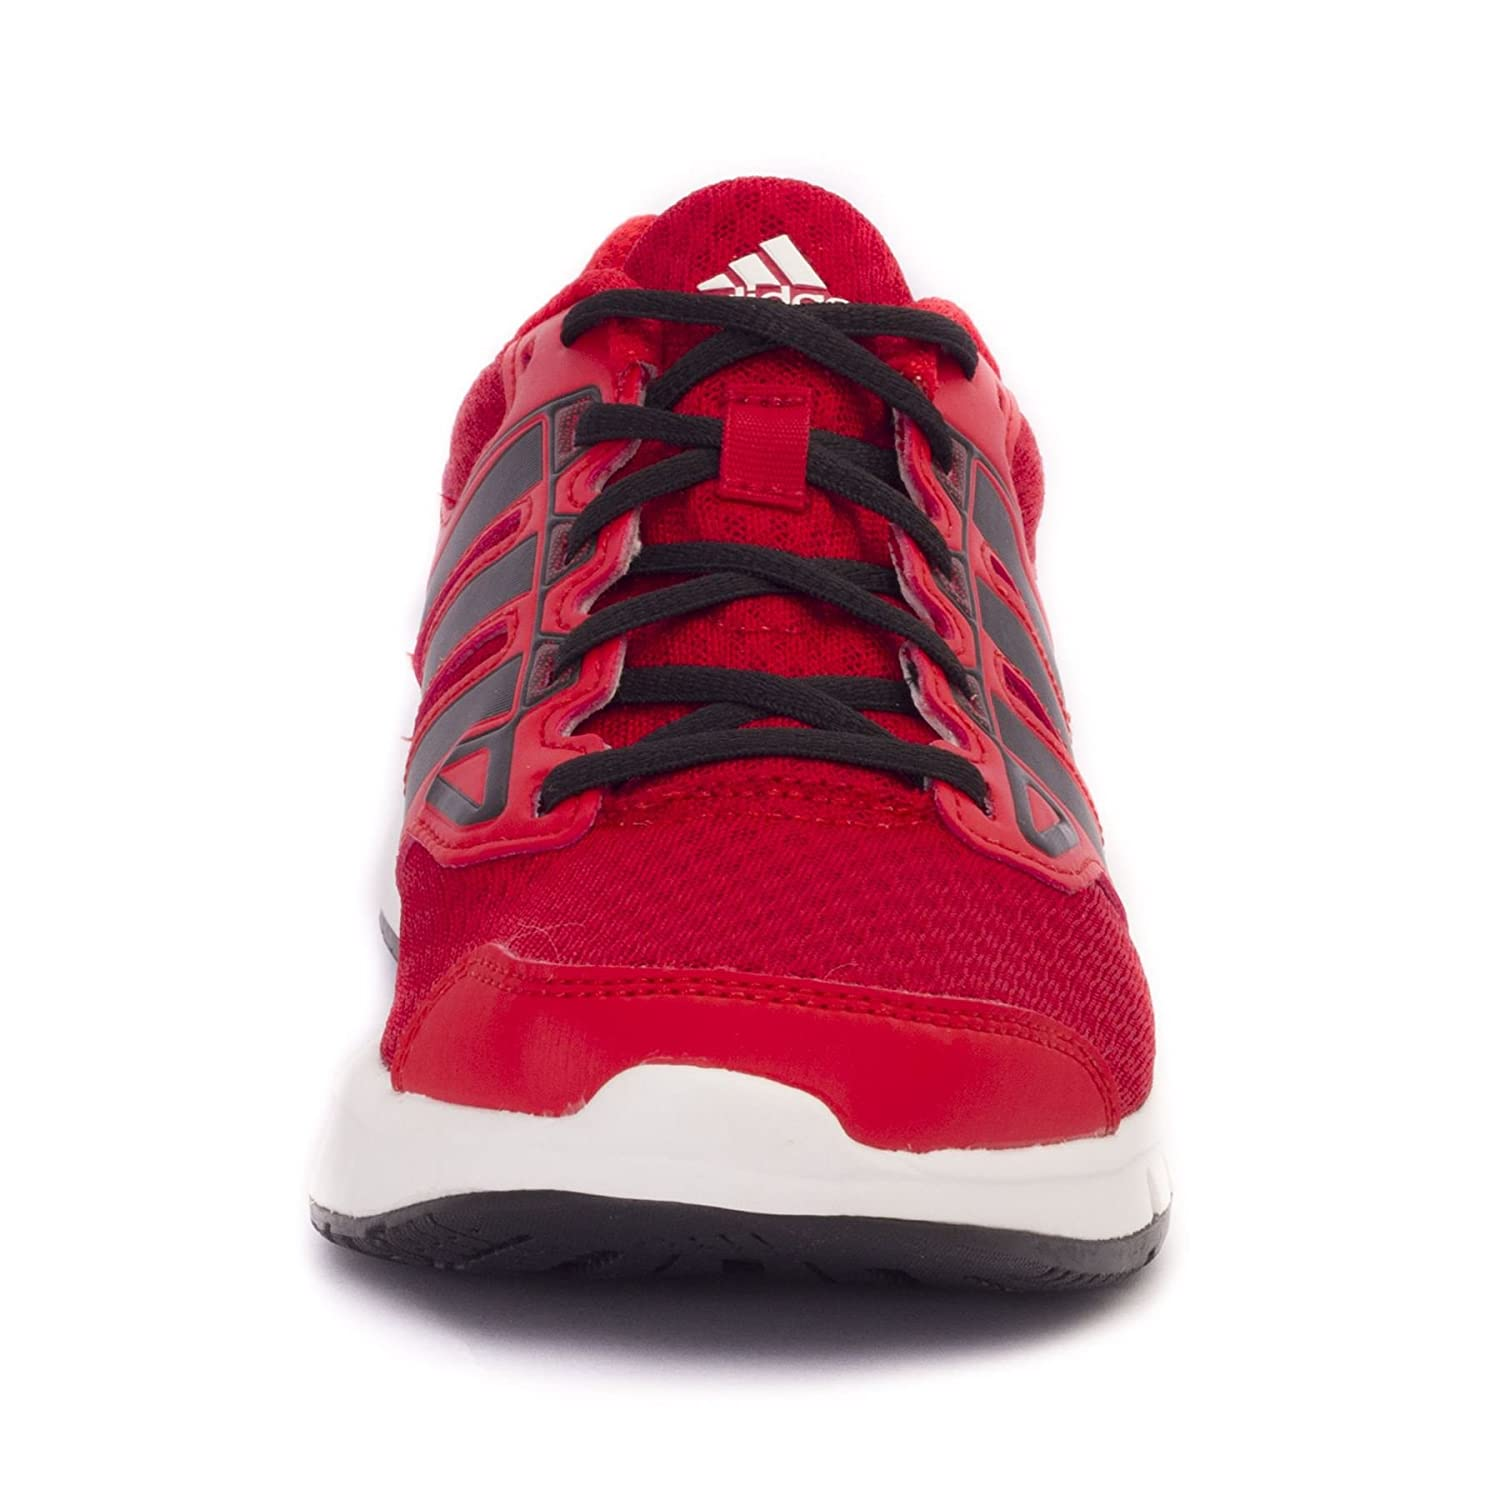 BNWT Adidas Men Galactic Elite (Red) AQ4816 White Box B Grade Approved by  Adidas: Amazon.co.uk: Shoes & Bags